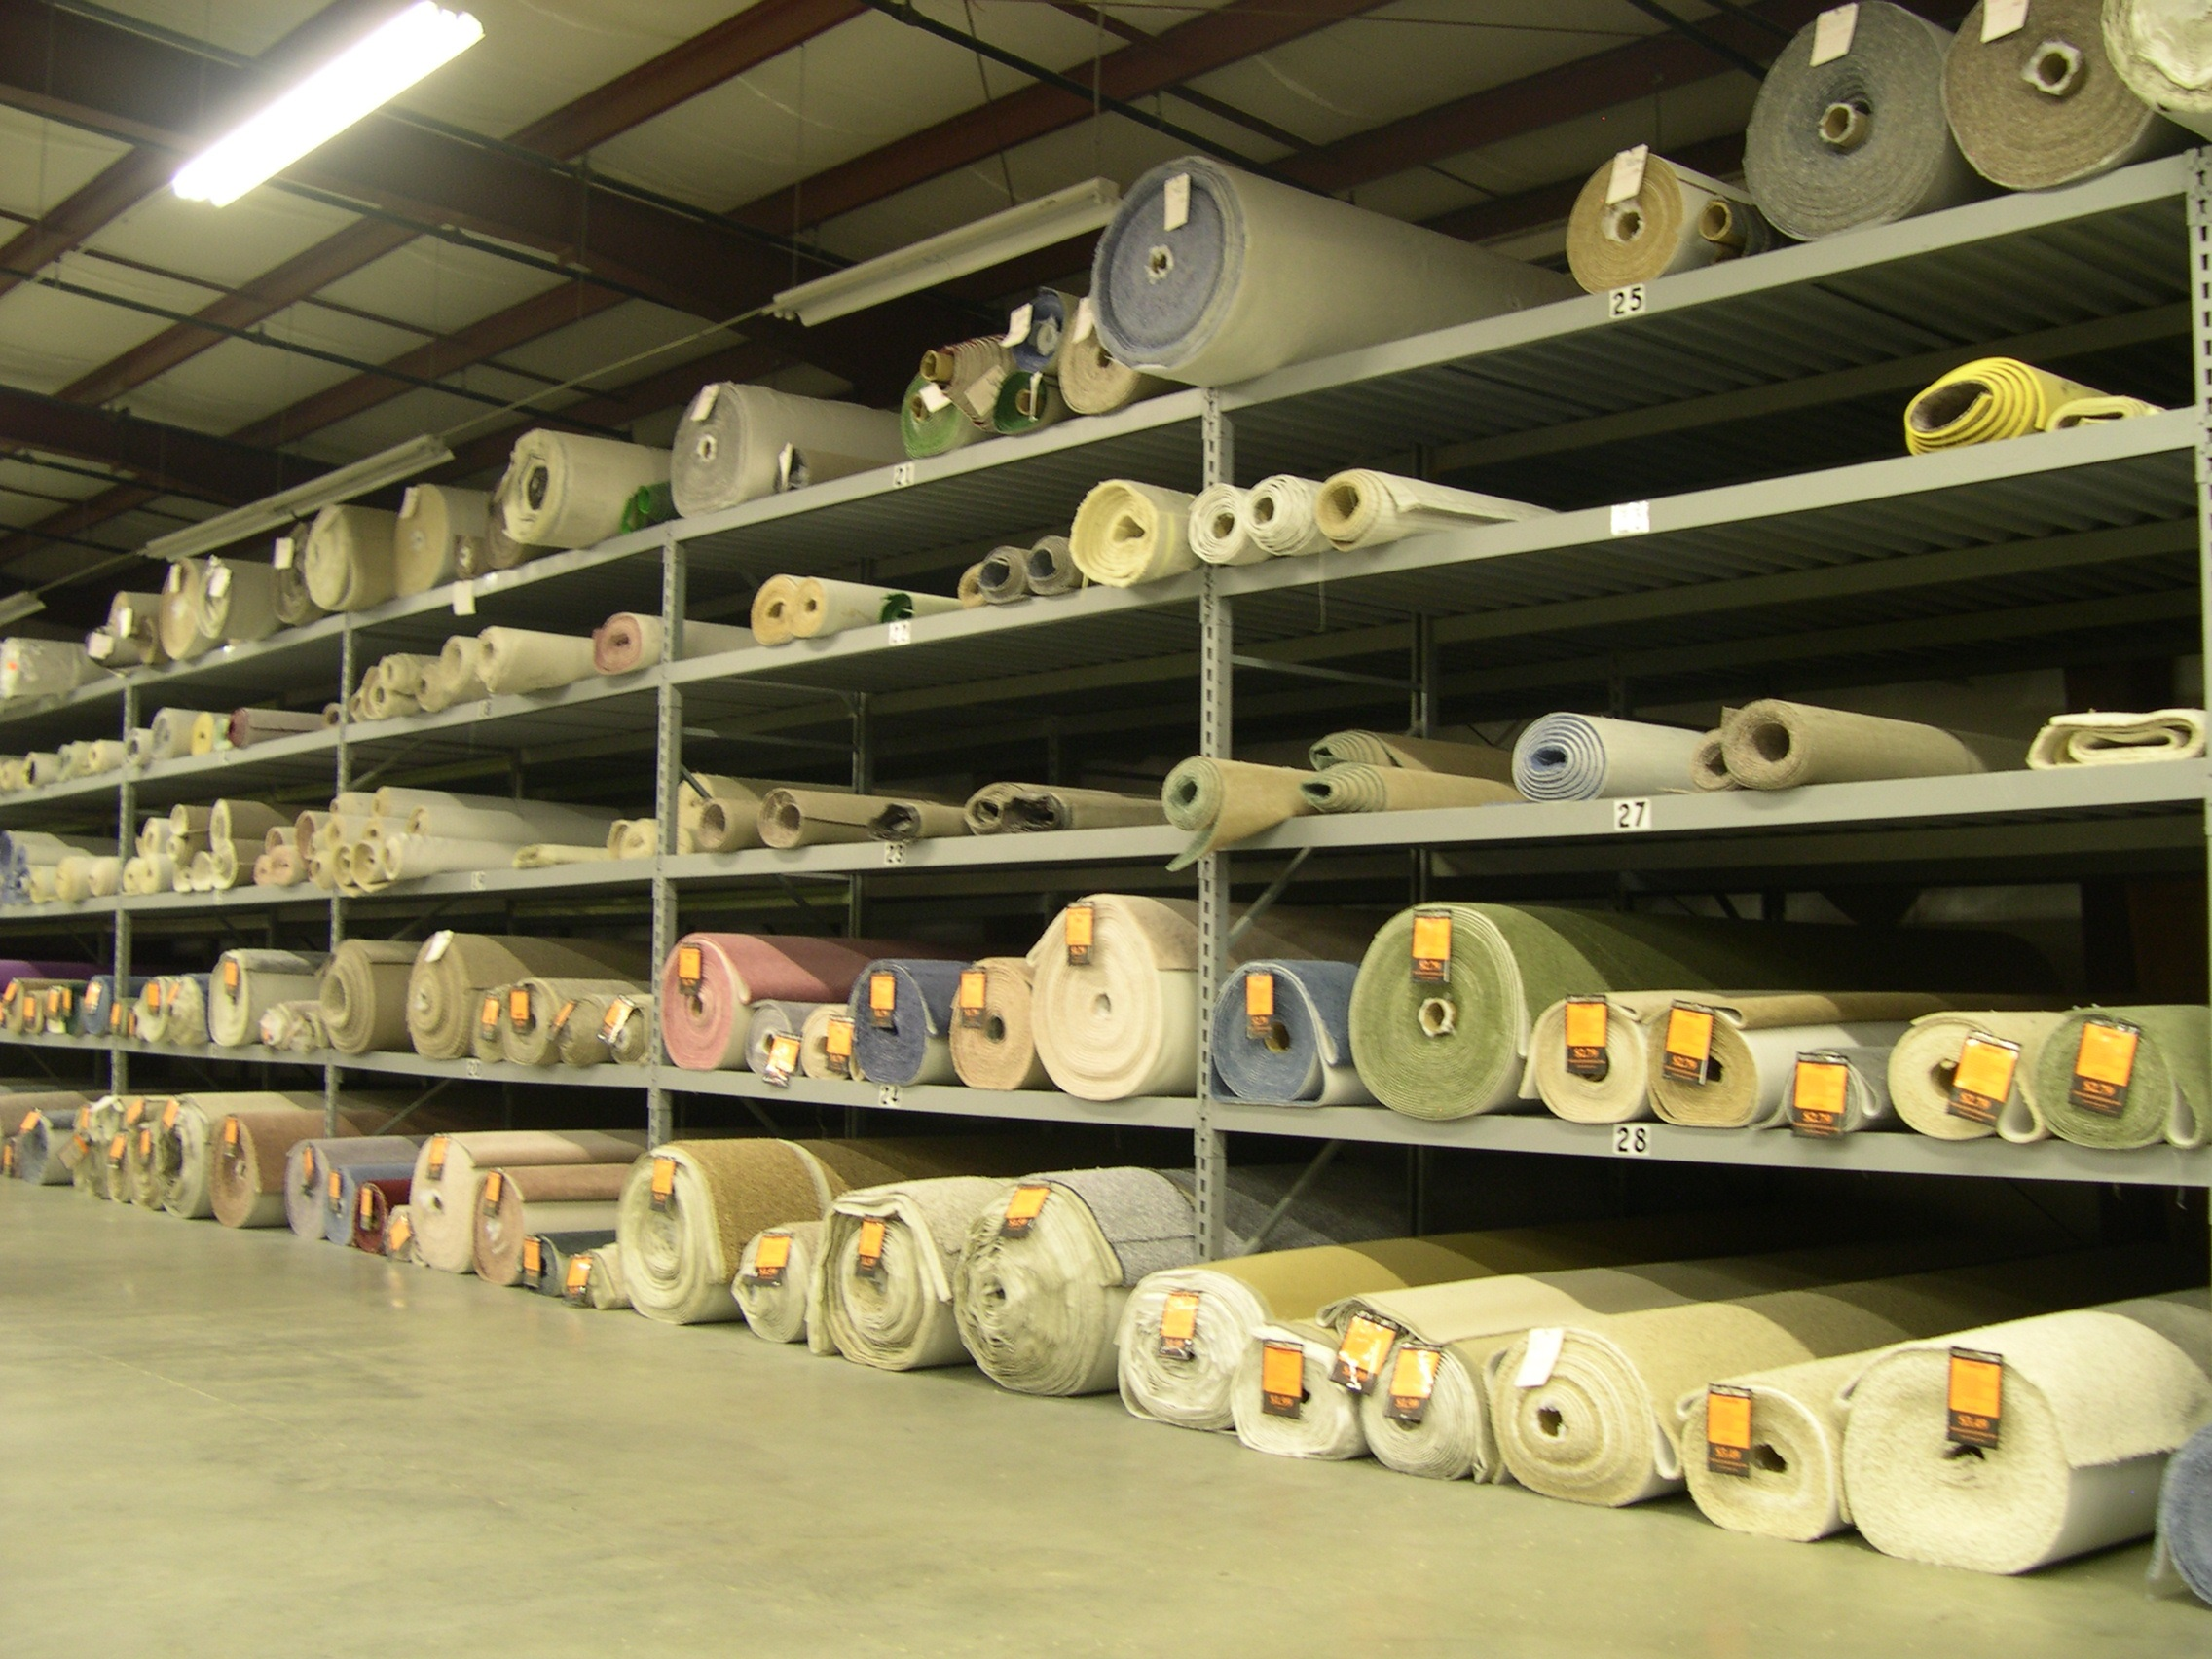 craft-rug-mills-stocks-over-200-rolls-of-carpet-more-than-anyone-else